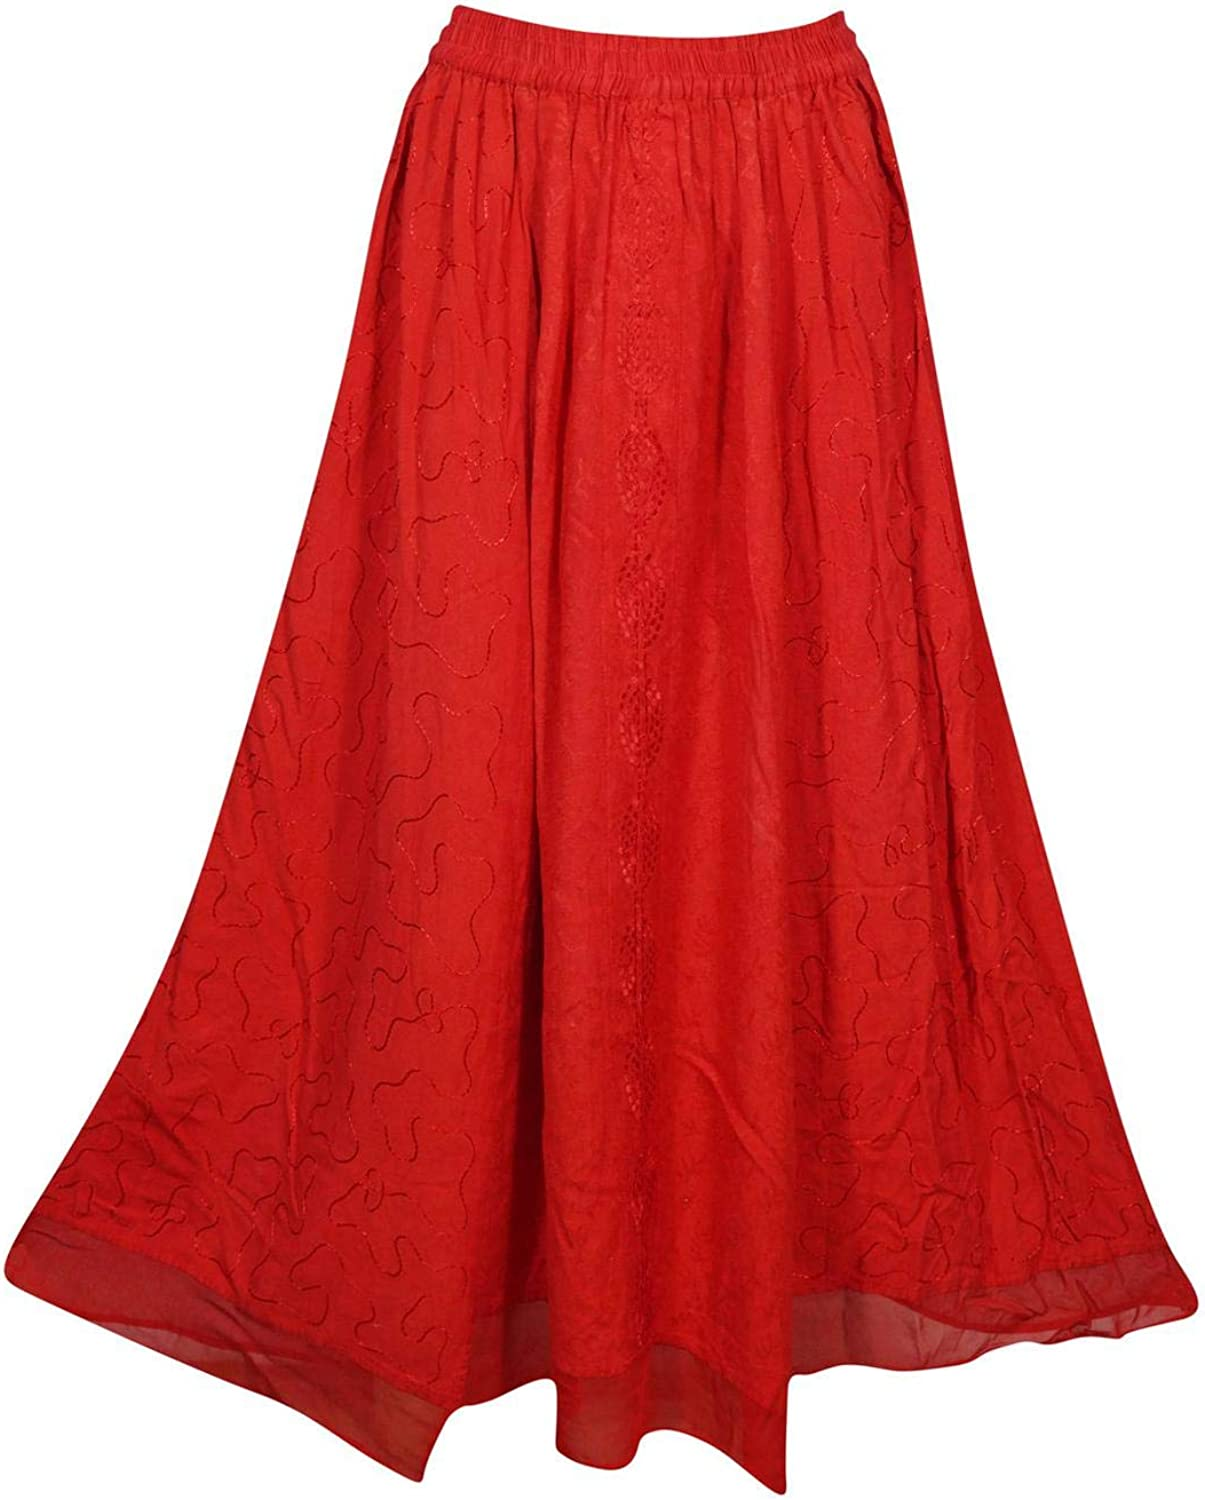 Indiatrendzs Women's Maxi Skirts Red Bohemian Embroidered Rayon Solid Casual Boho Long Skirt S/M